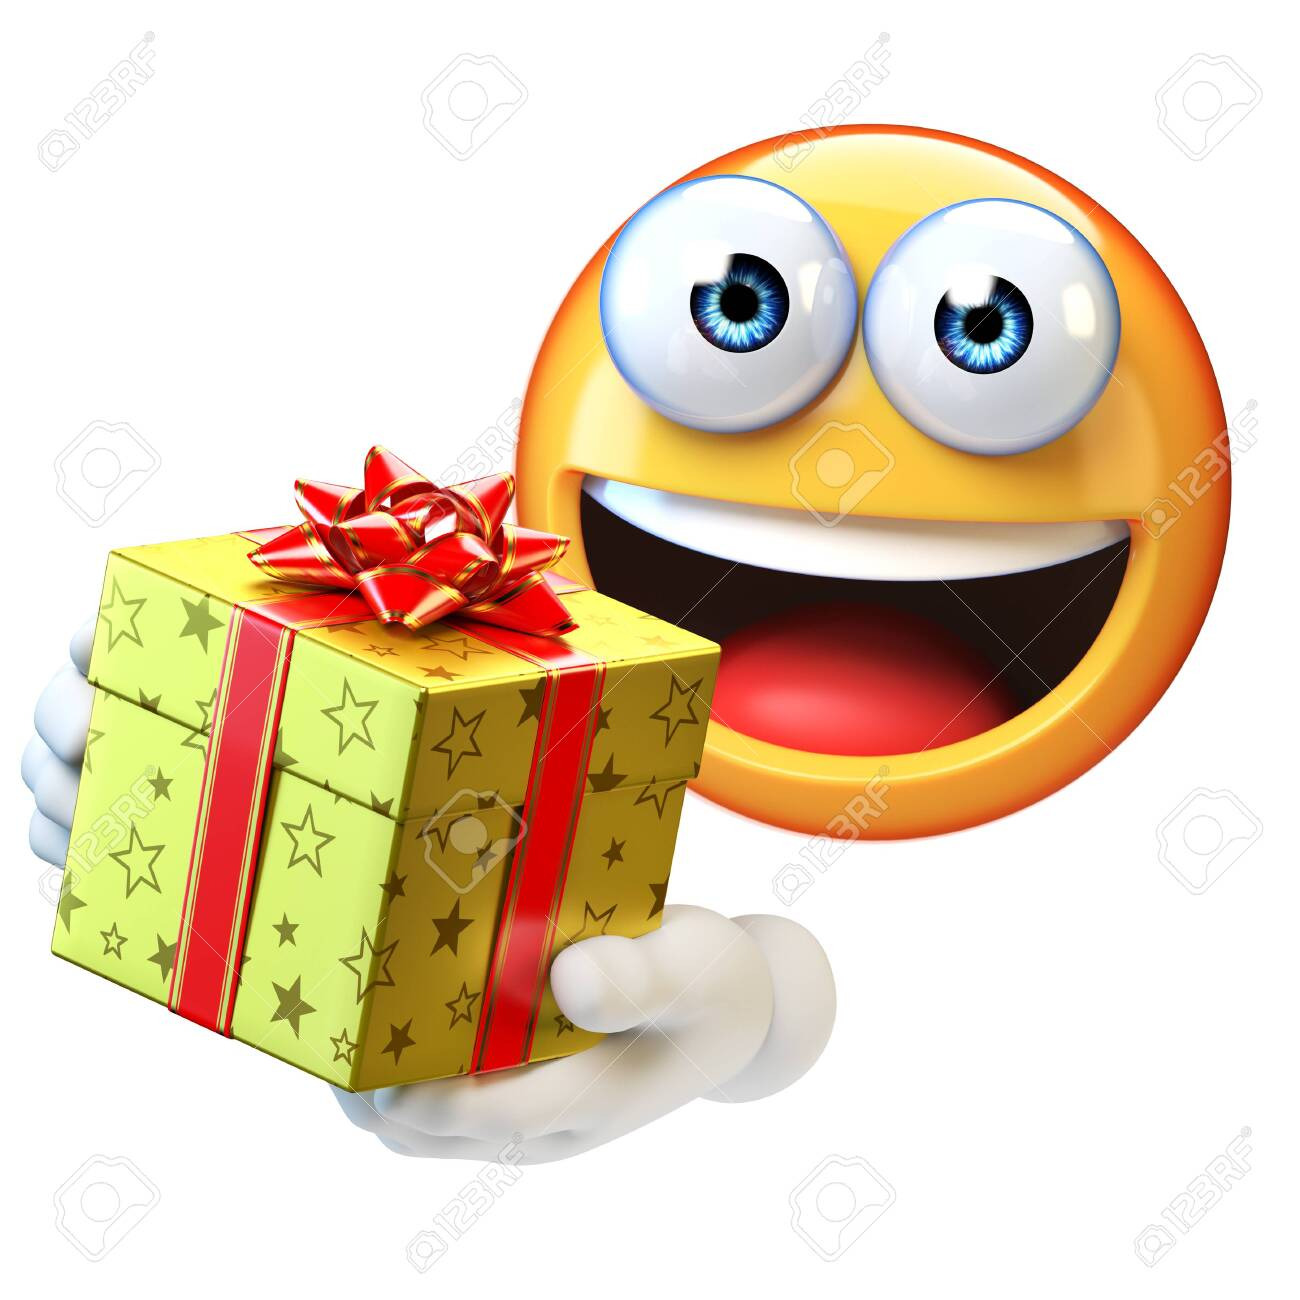 Emoji Holding Present Emoticon With Gift Box 3d Rendering Stock Photo Picture And Royalty Free Image Image 131679879 About 0% of these are business & promotional gifts, 0% are resin crafts, and 0% are artificial crafts. 123rf com